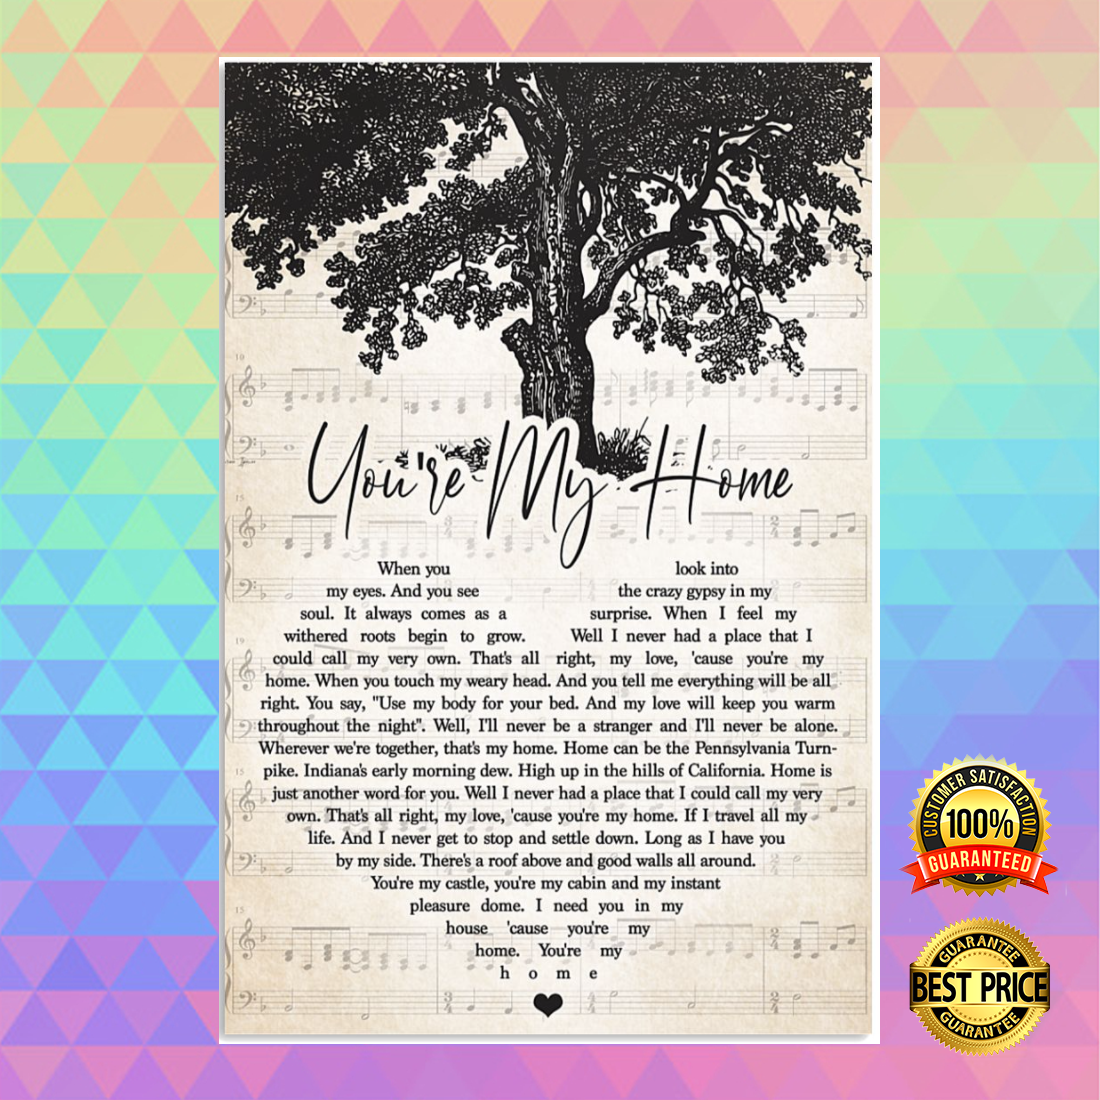 [Newest] You're my home heart song lyric poster